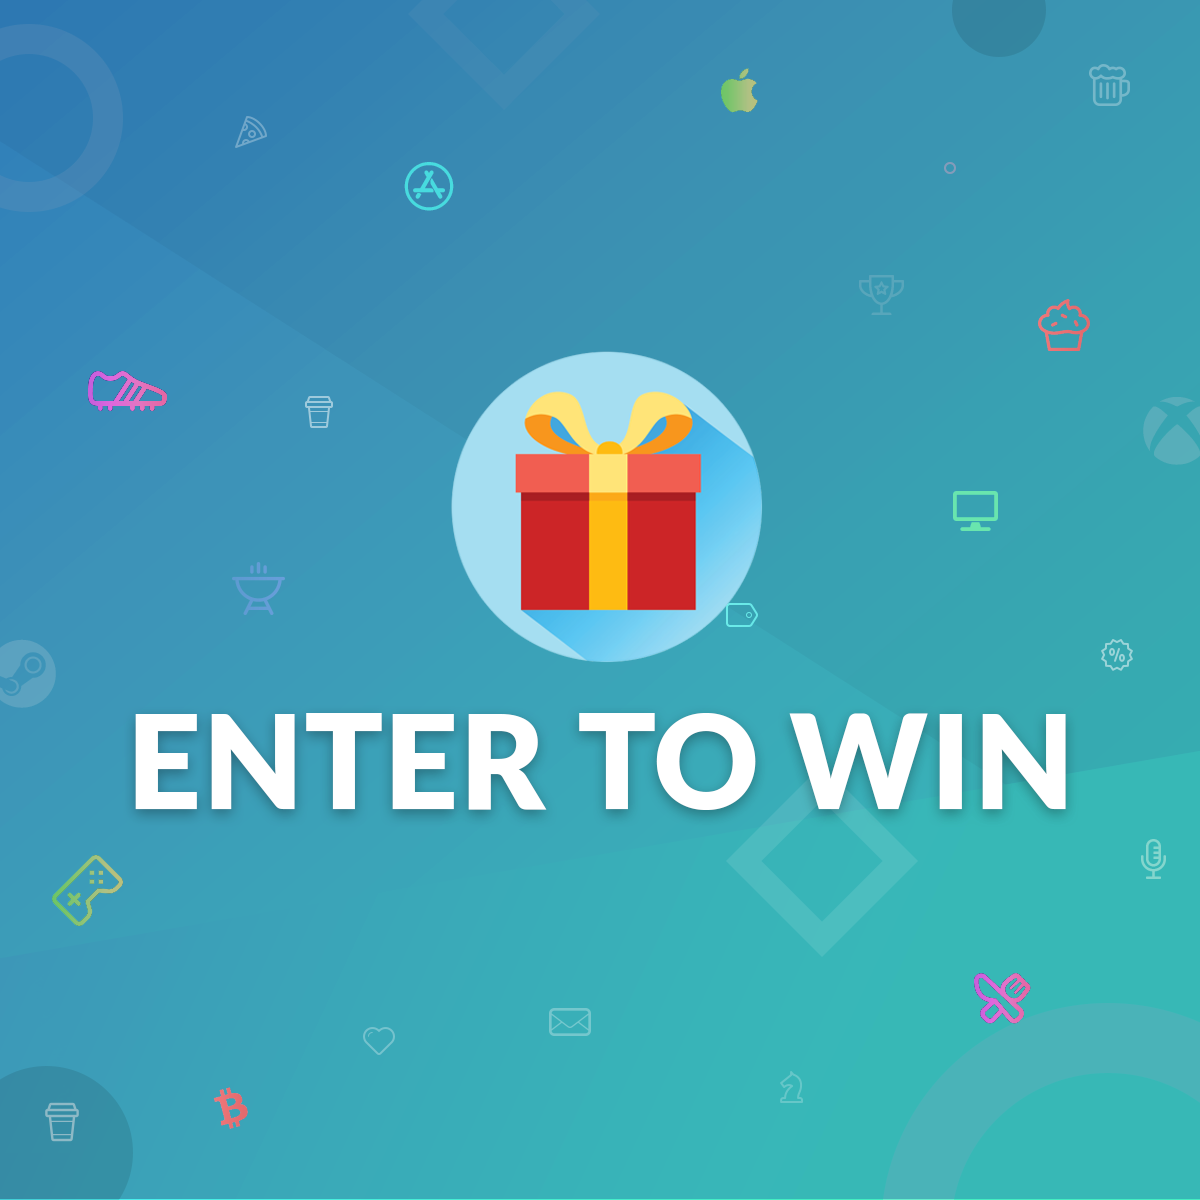 Enter to win 1 of 10 chances for up to $100 in Steam gift cards Giveaway Image